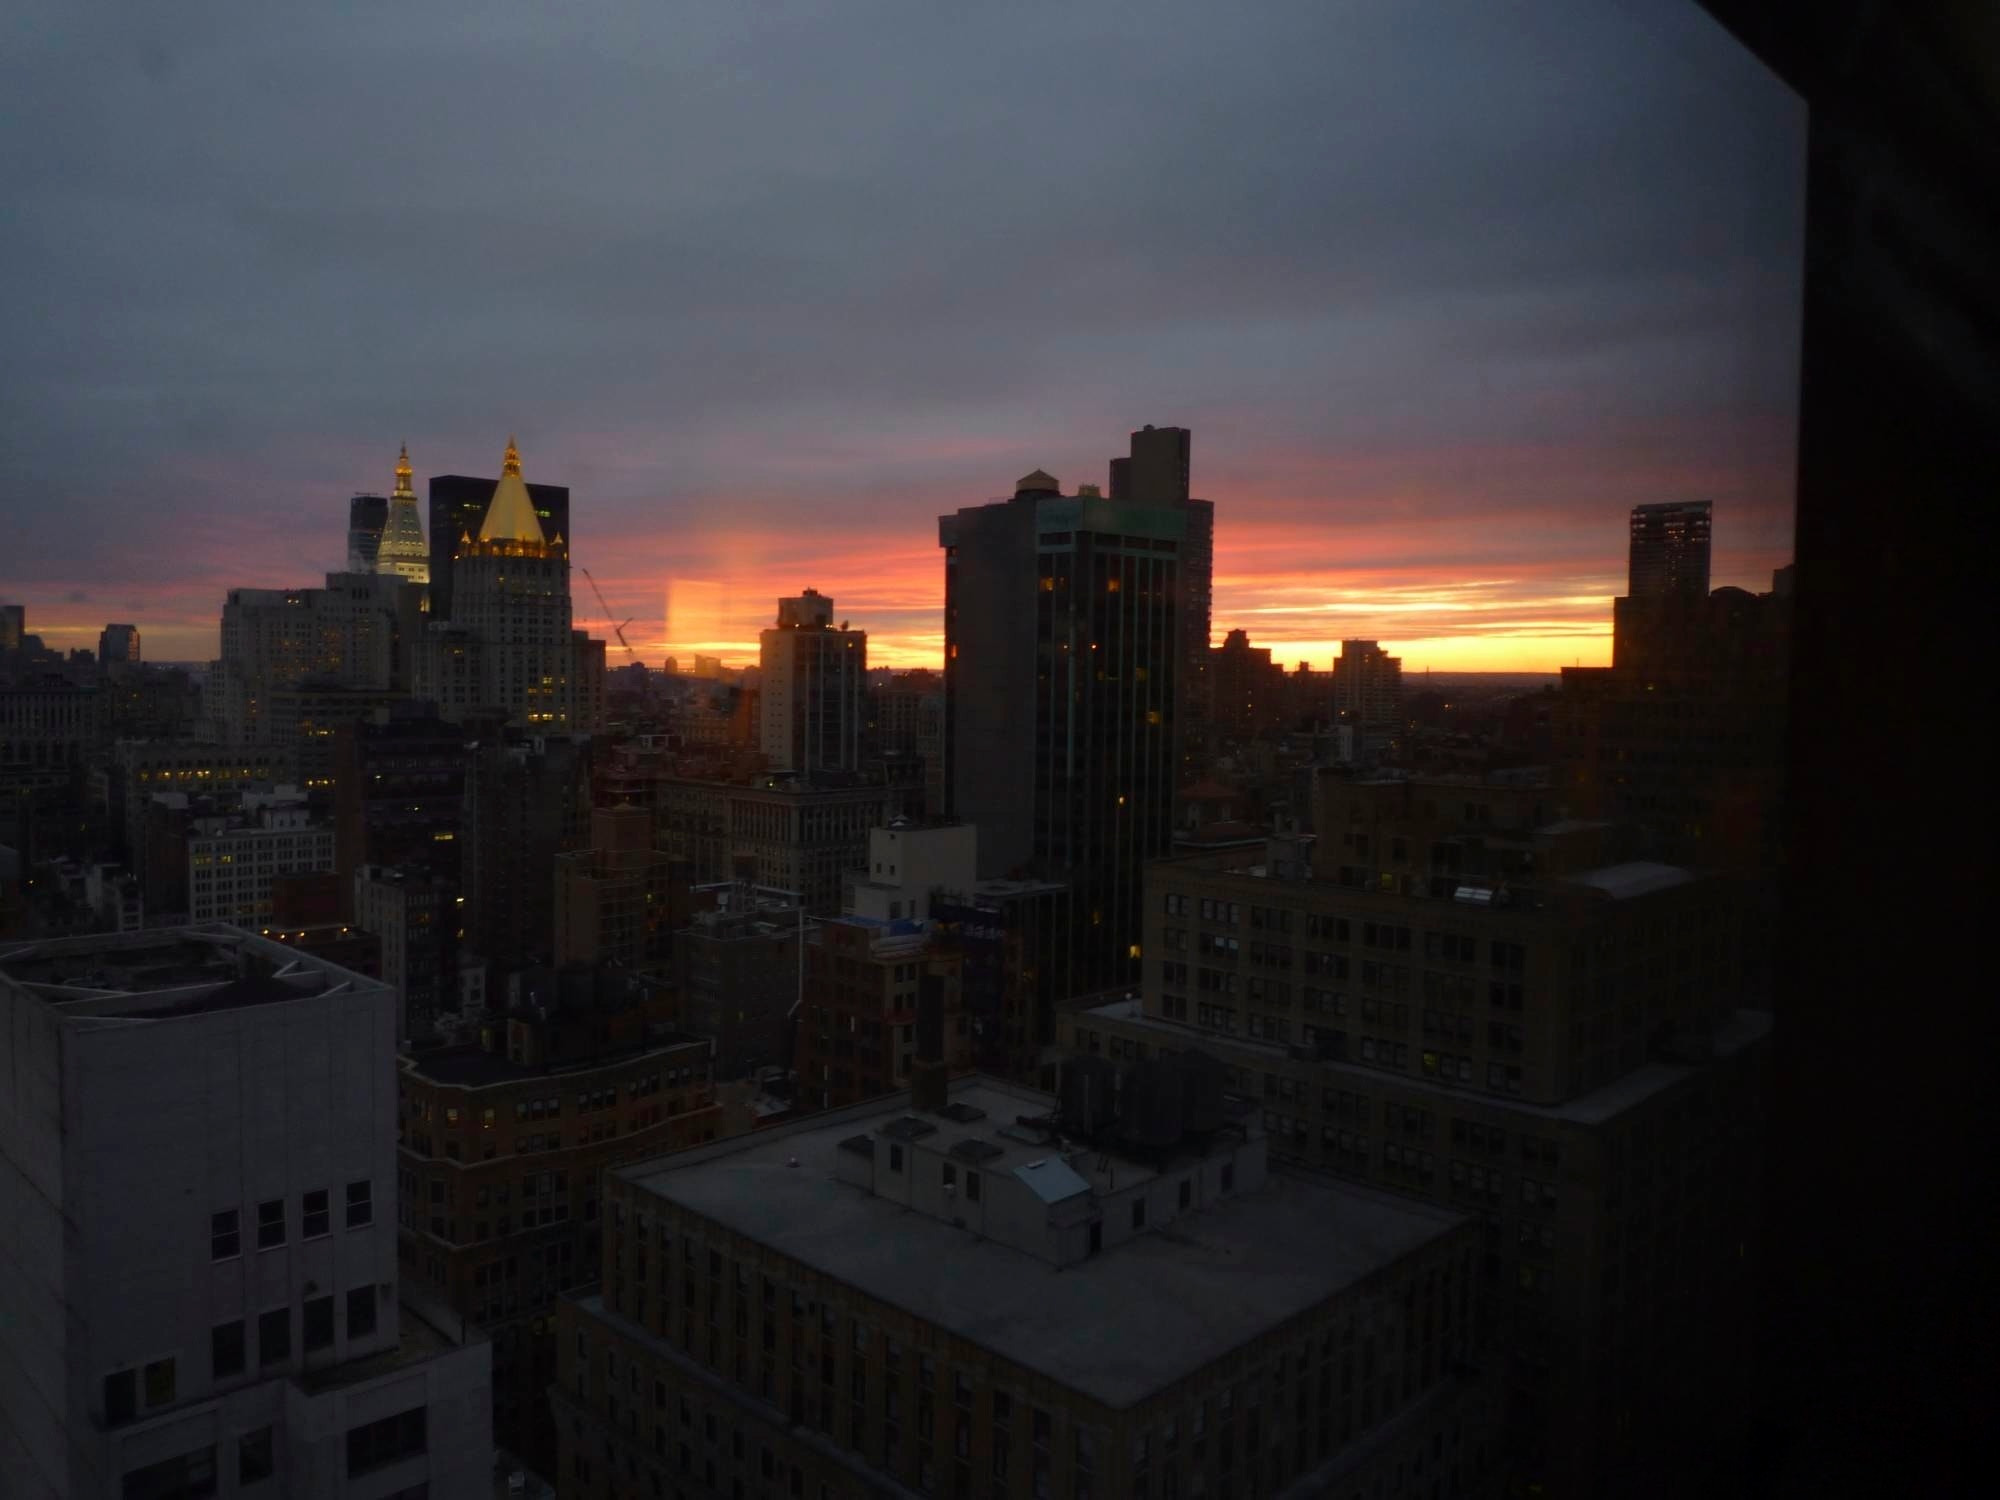 Photograph NYC skyline at dusk by M. Armitage on 500px